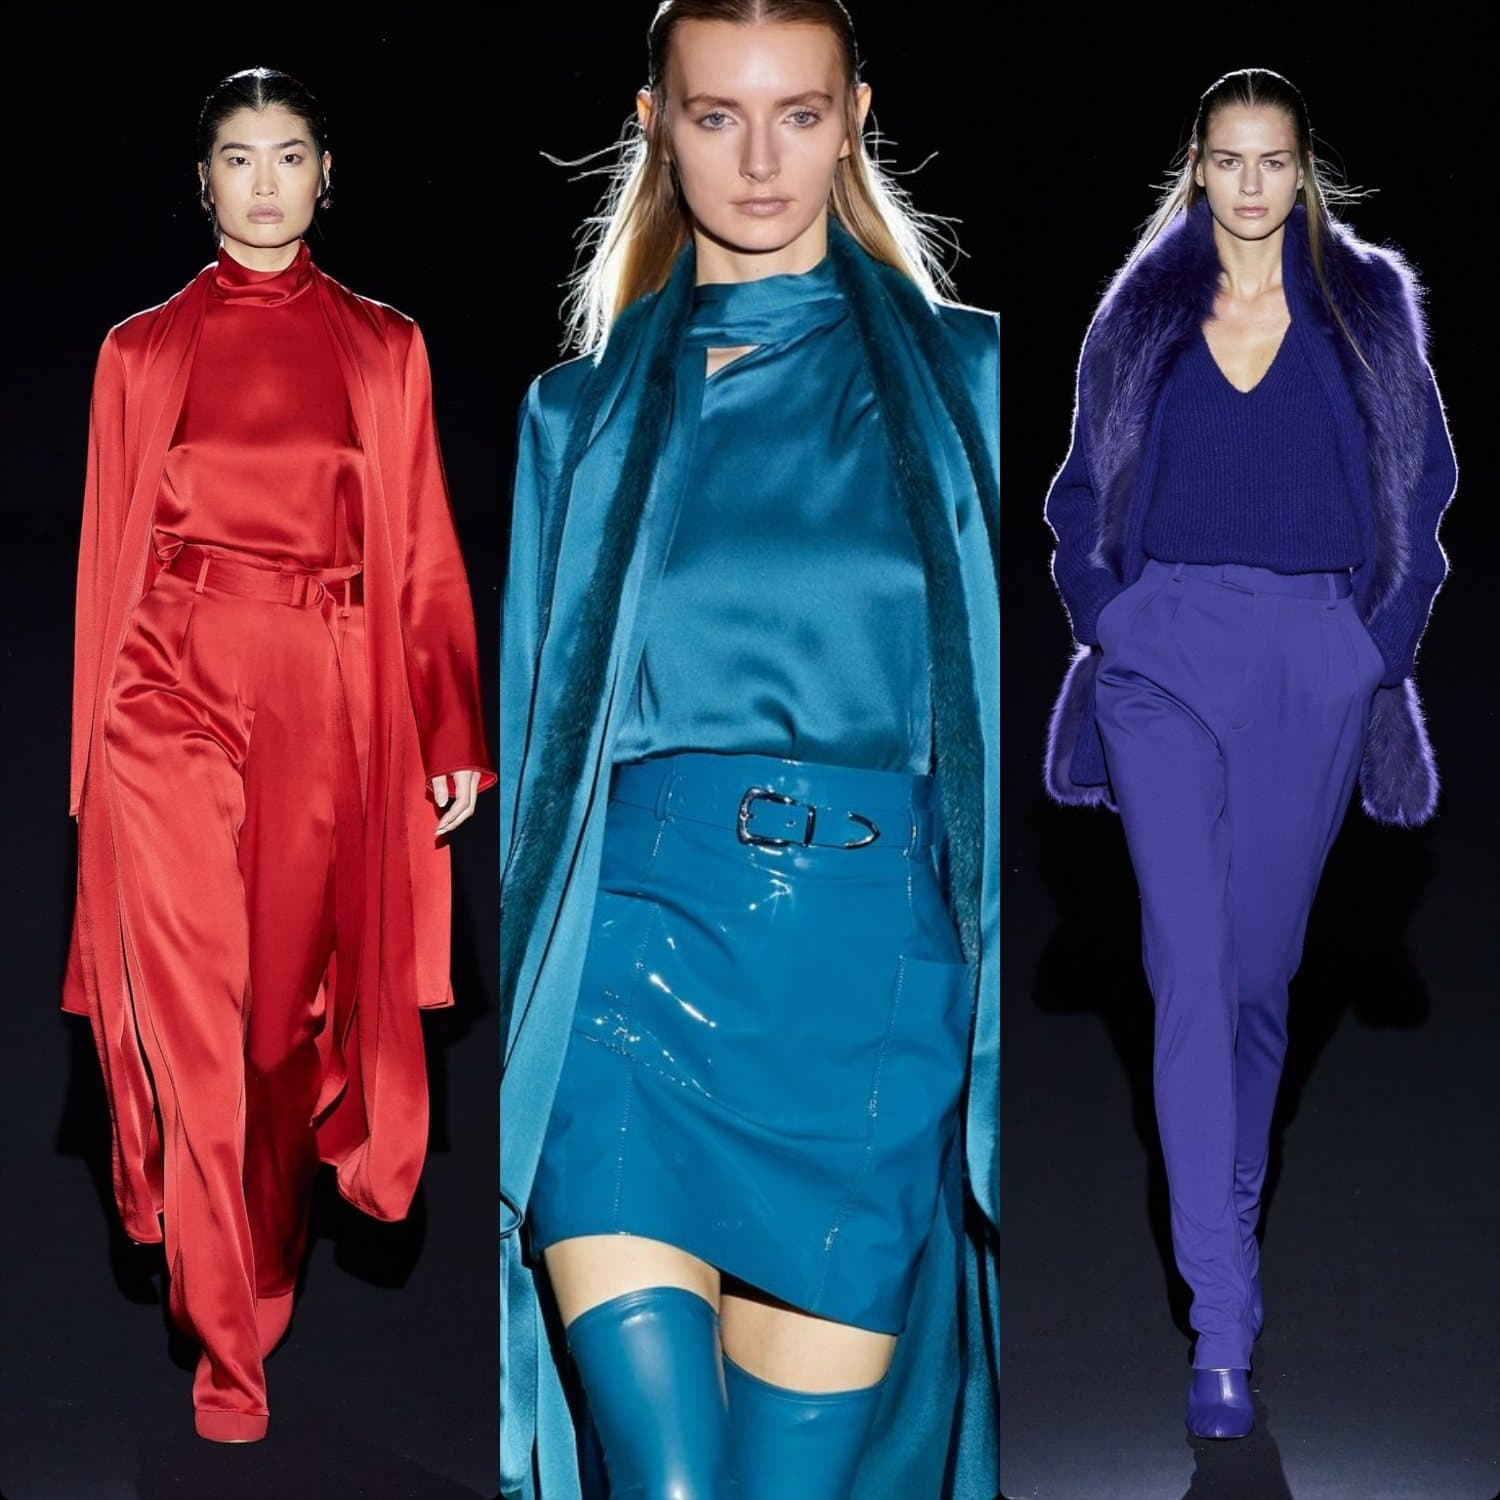 Sally Lapointe Fall-Winter 2020-2021 New York. RUNWAY MAGAZINE ® Collections. RUNWAY NOW / RUNWAY NEW